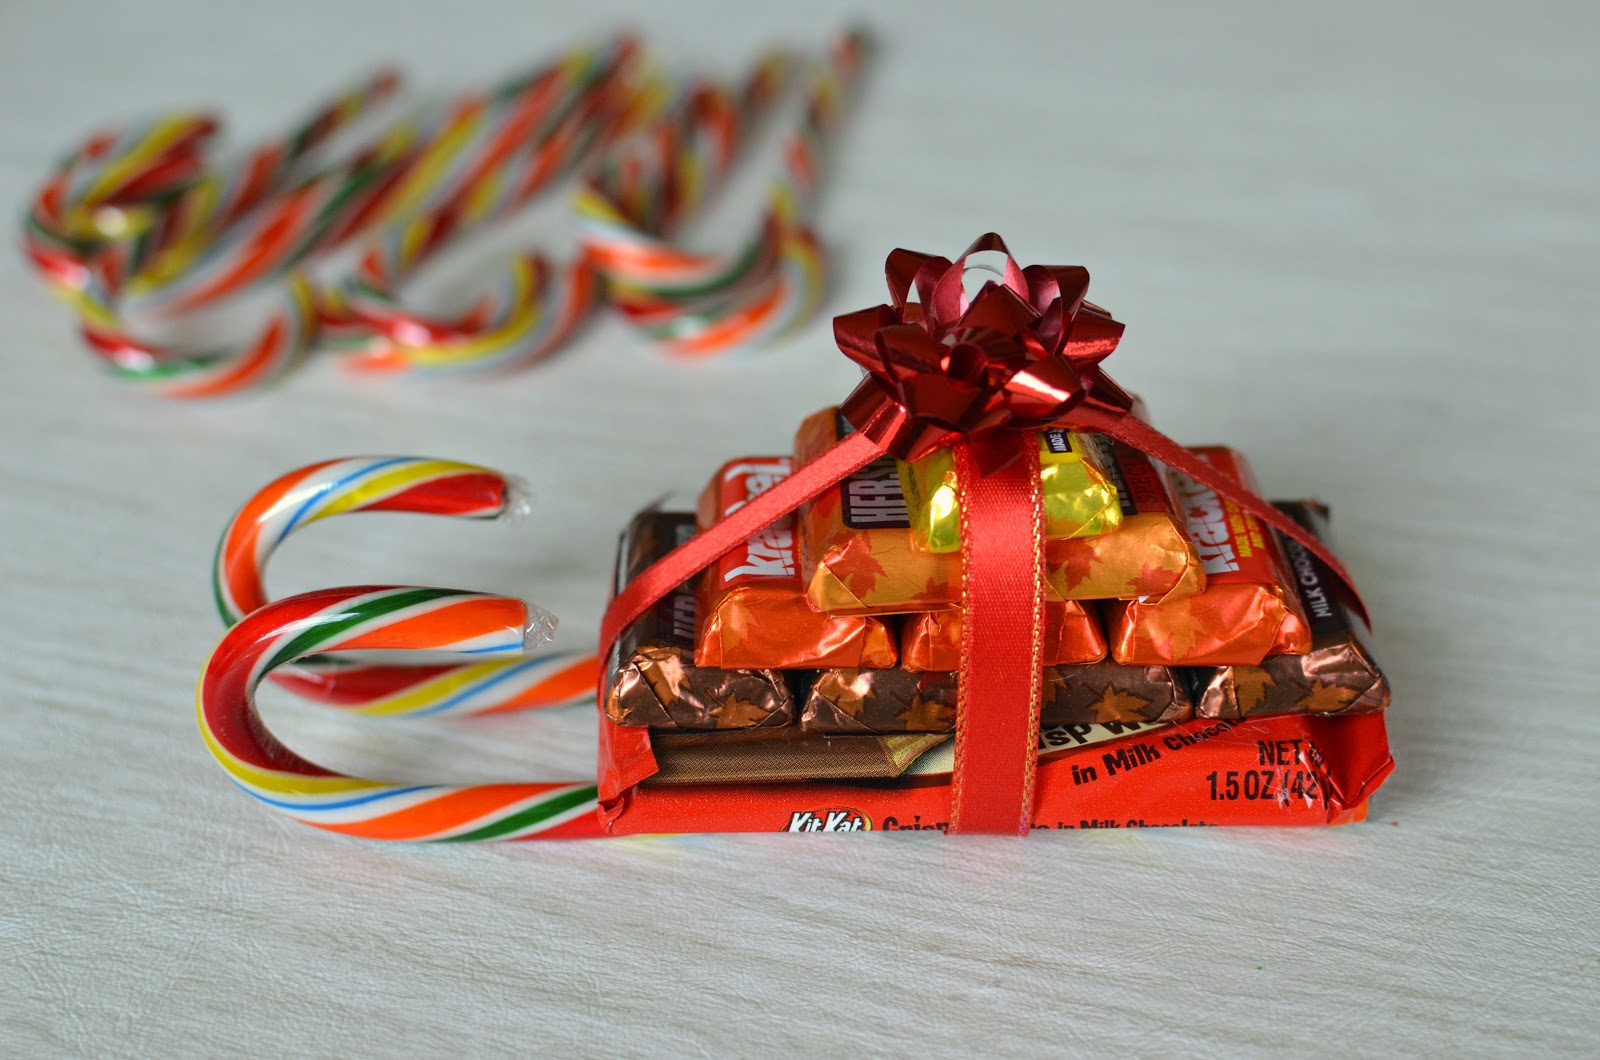 How To Make A Sleigh Out Of Candy Bars